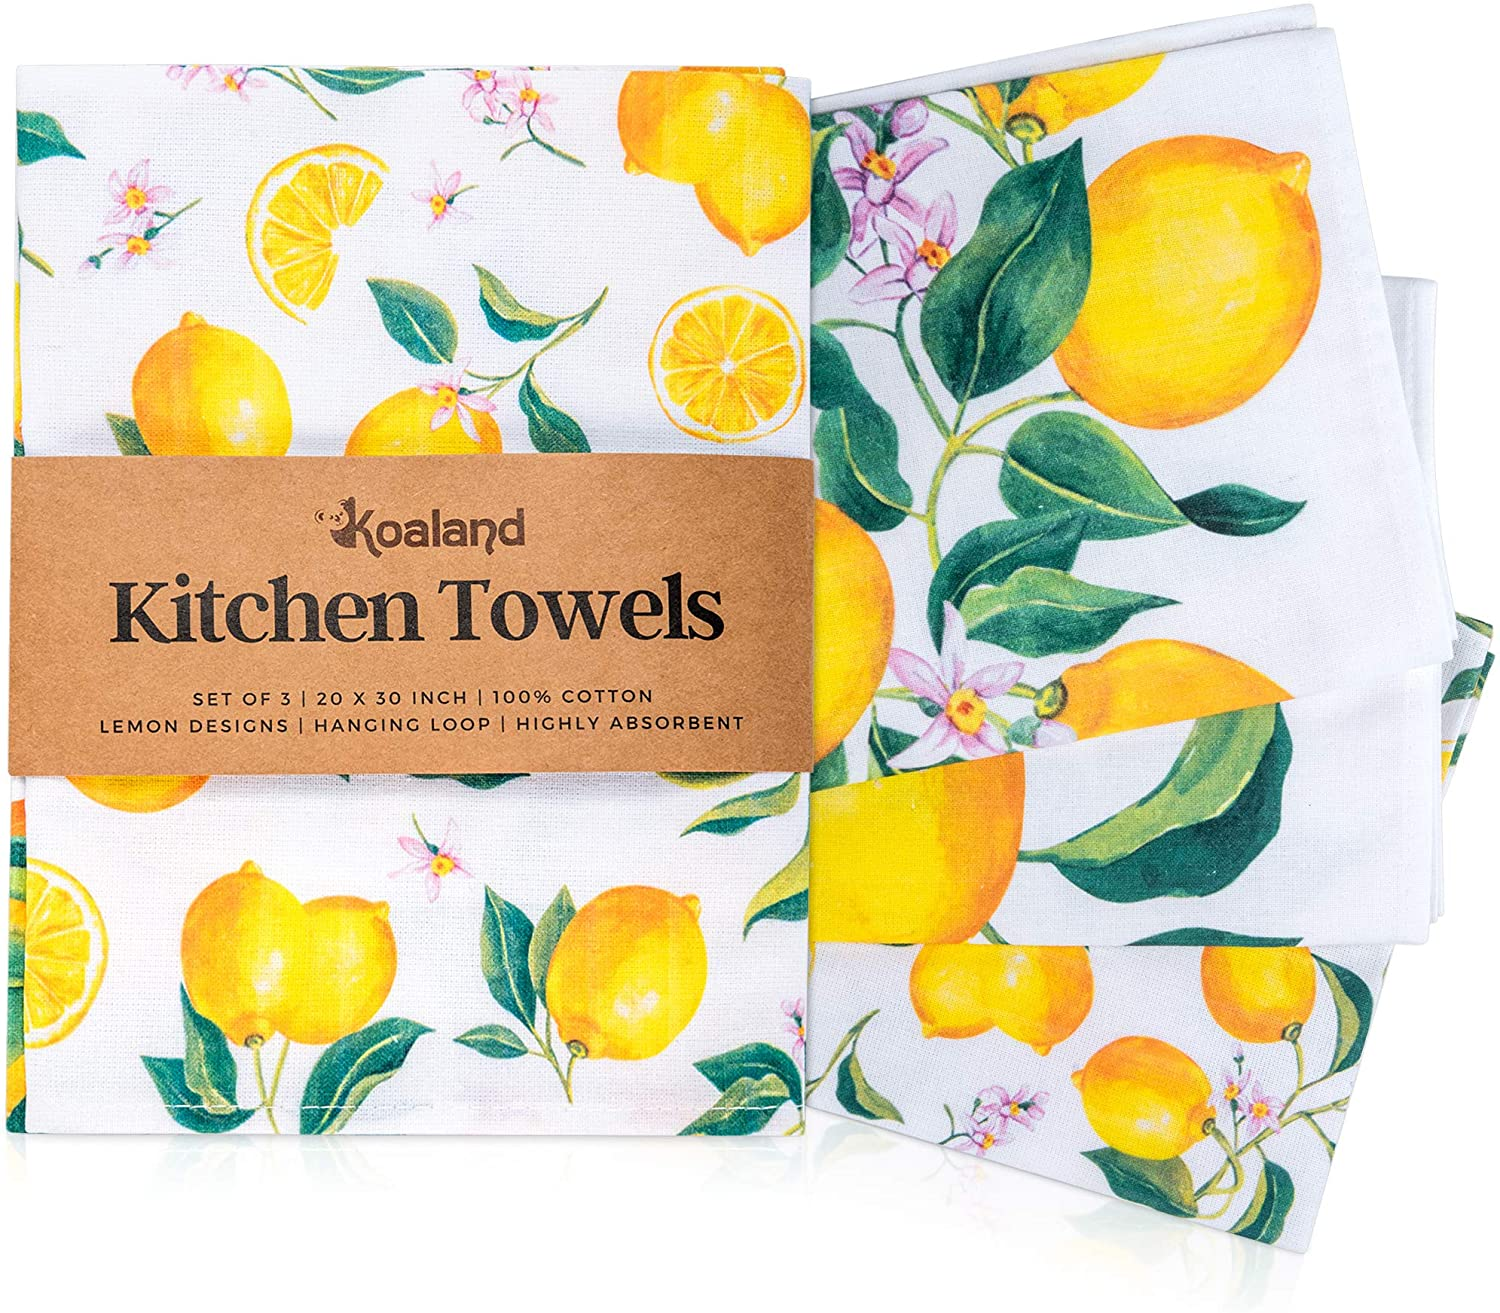 cute-gifts-for-girlfriends-towels